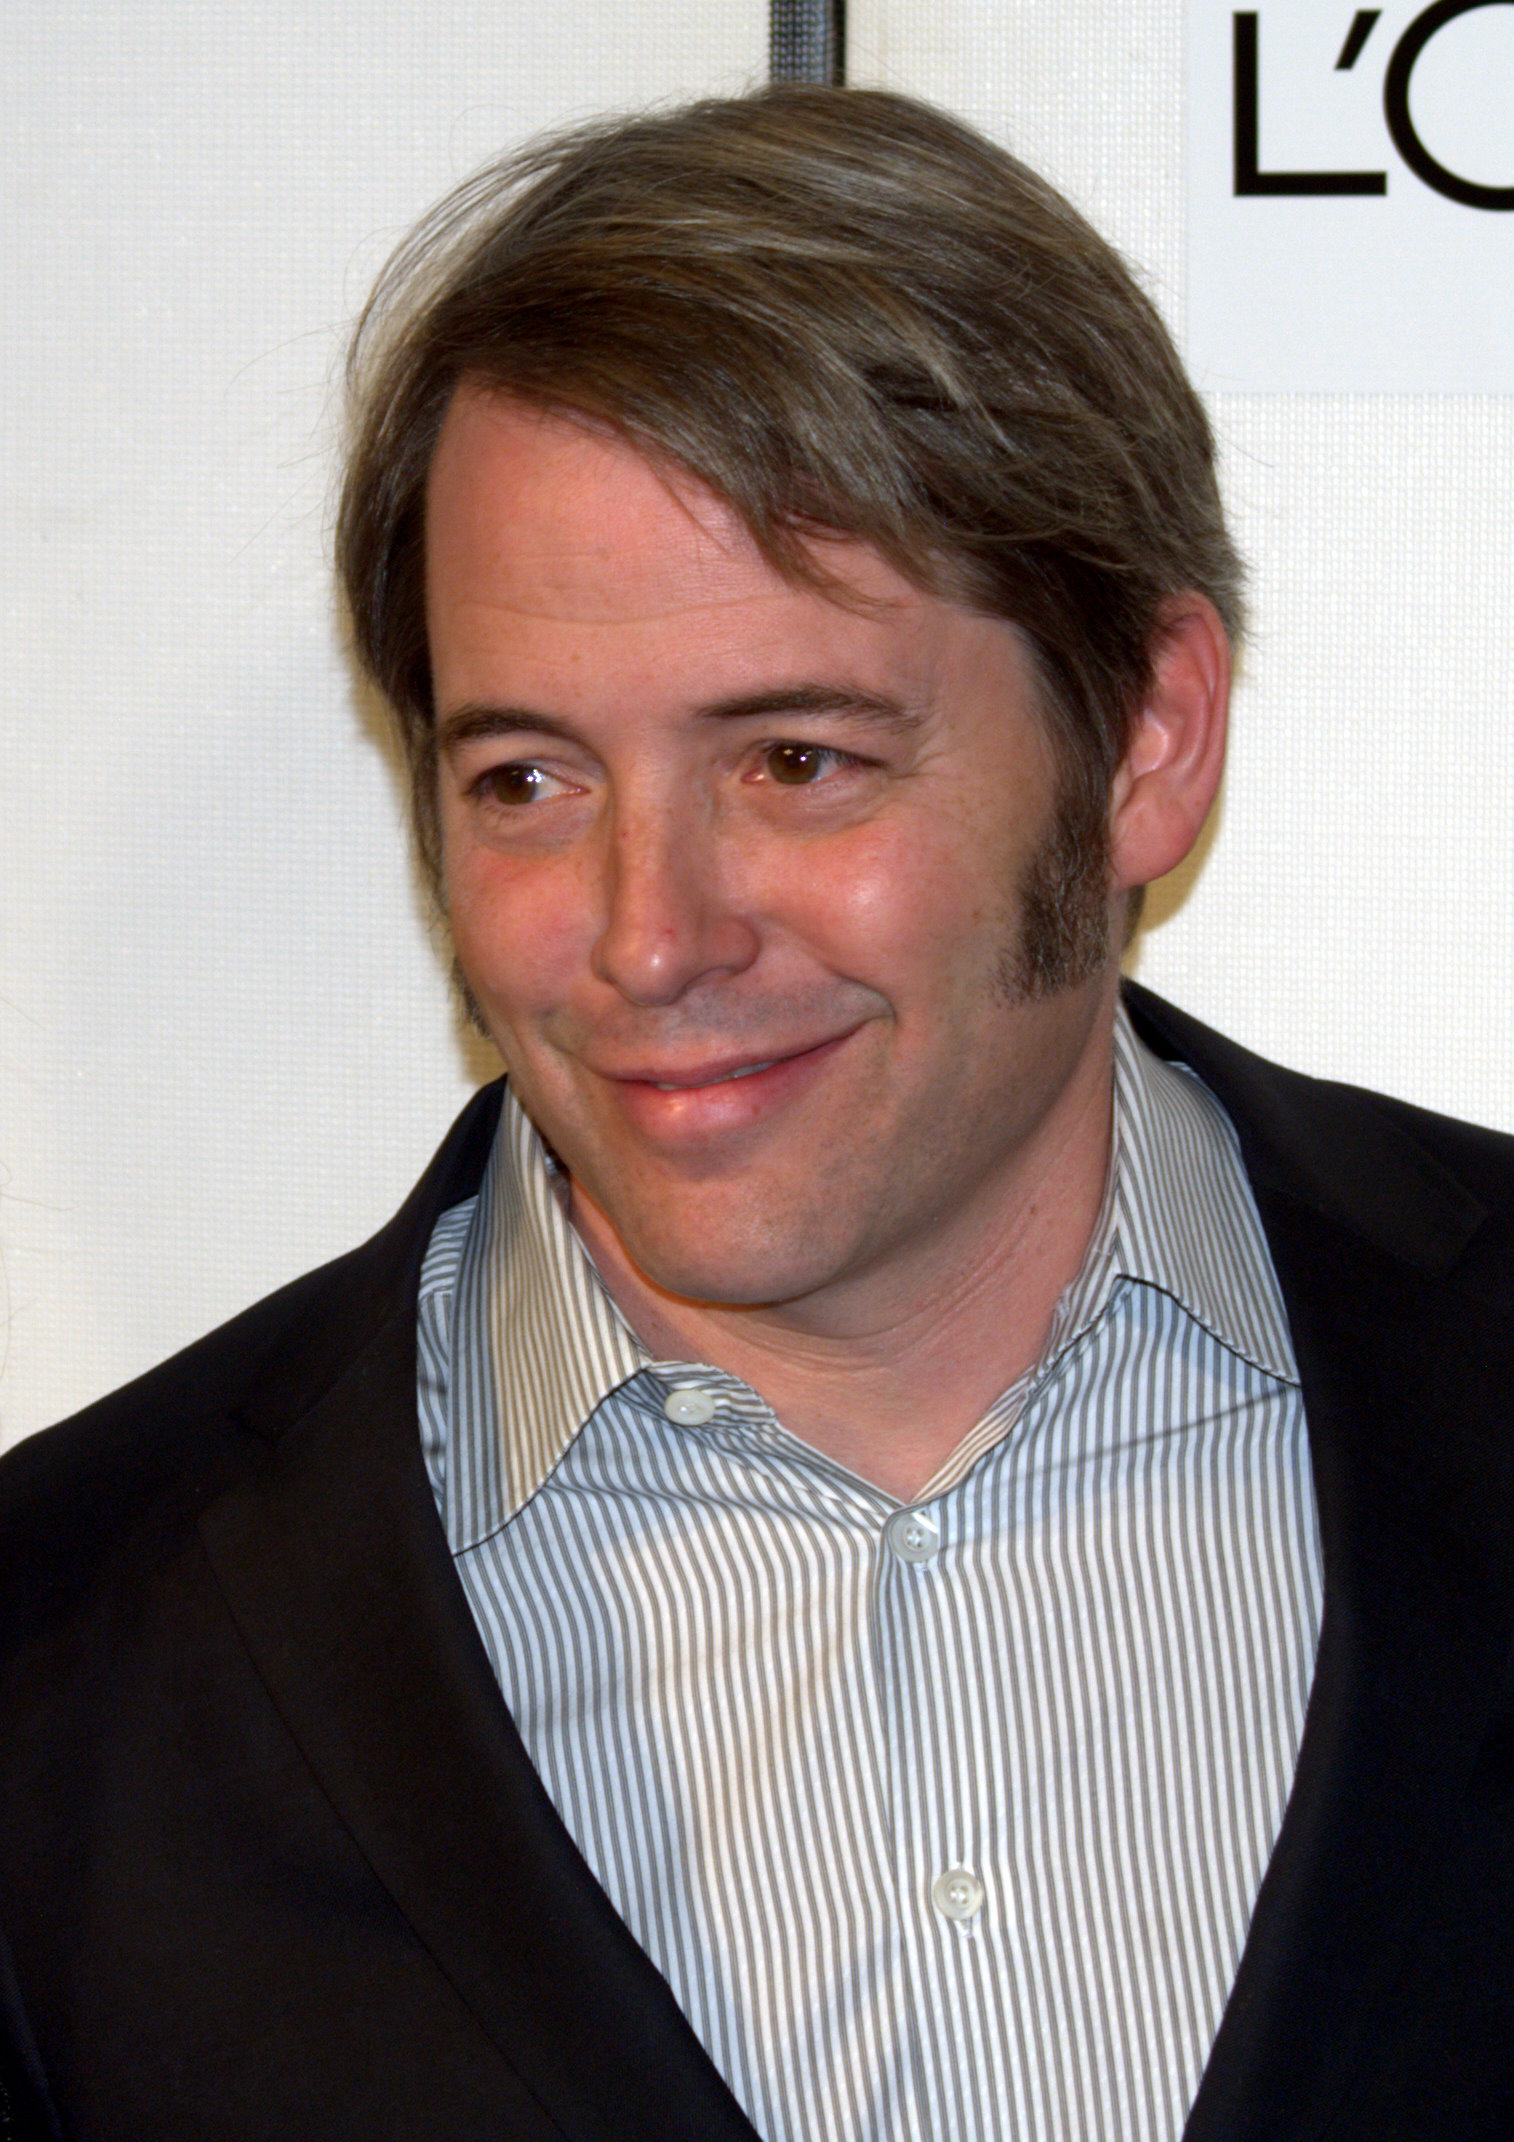 http://upload.wikimedia.org/wikipedia/commons/e/e6/Matthew_Broderick_portrait_2009.jpg